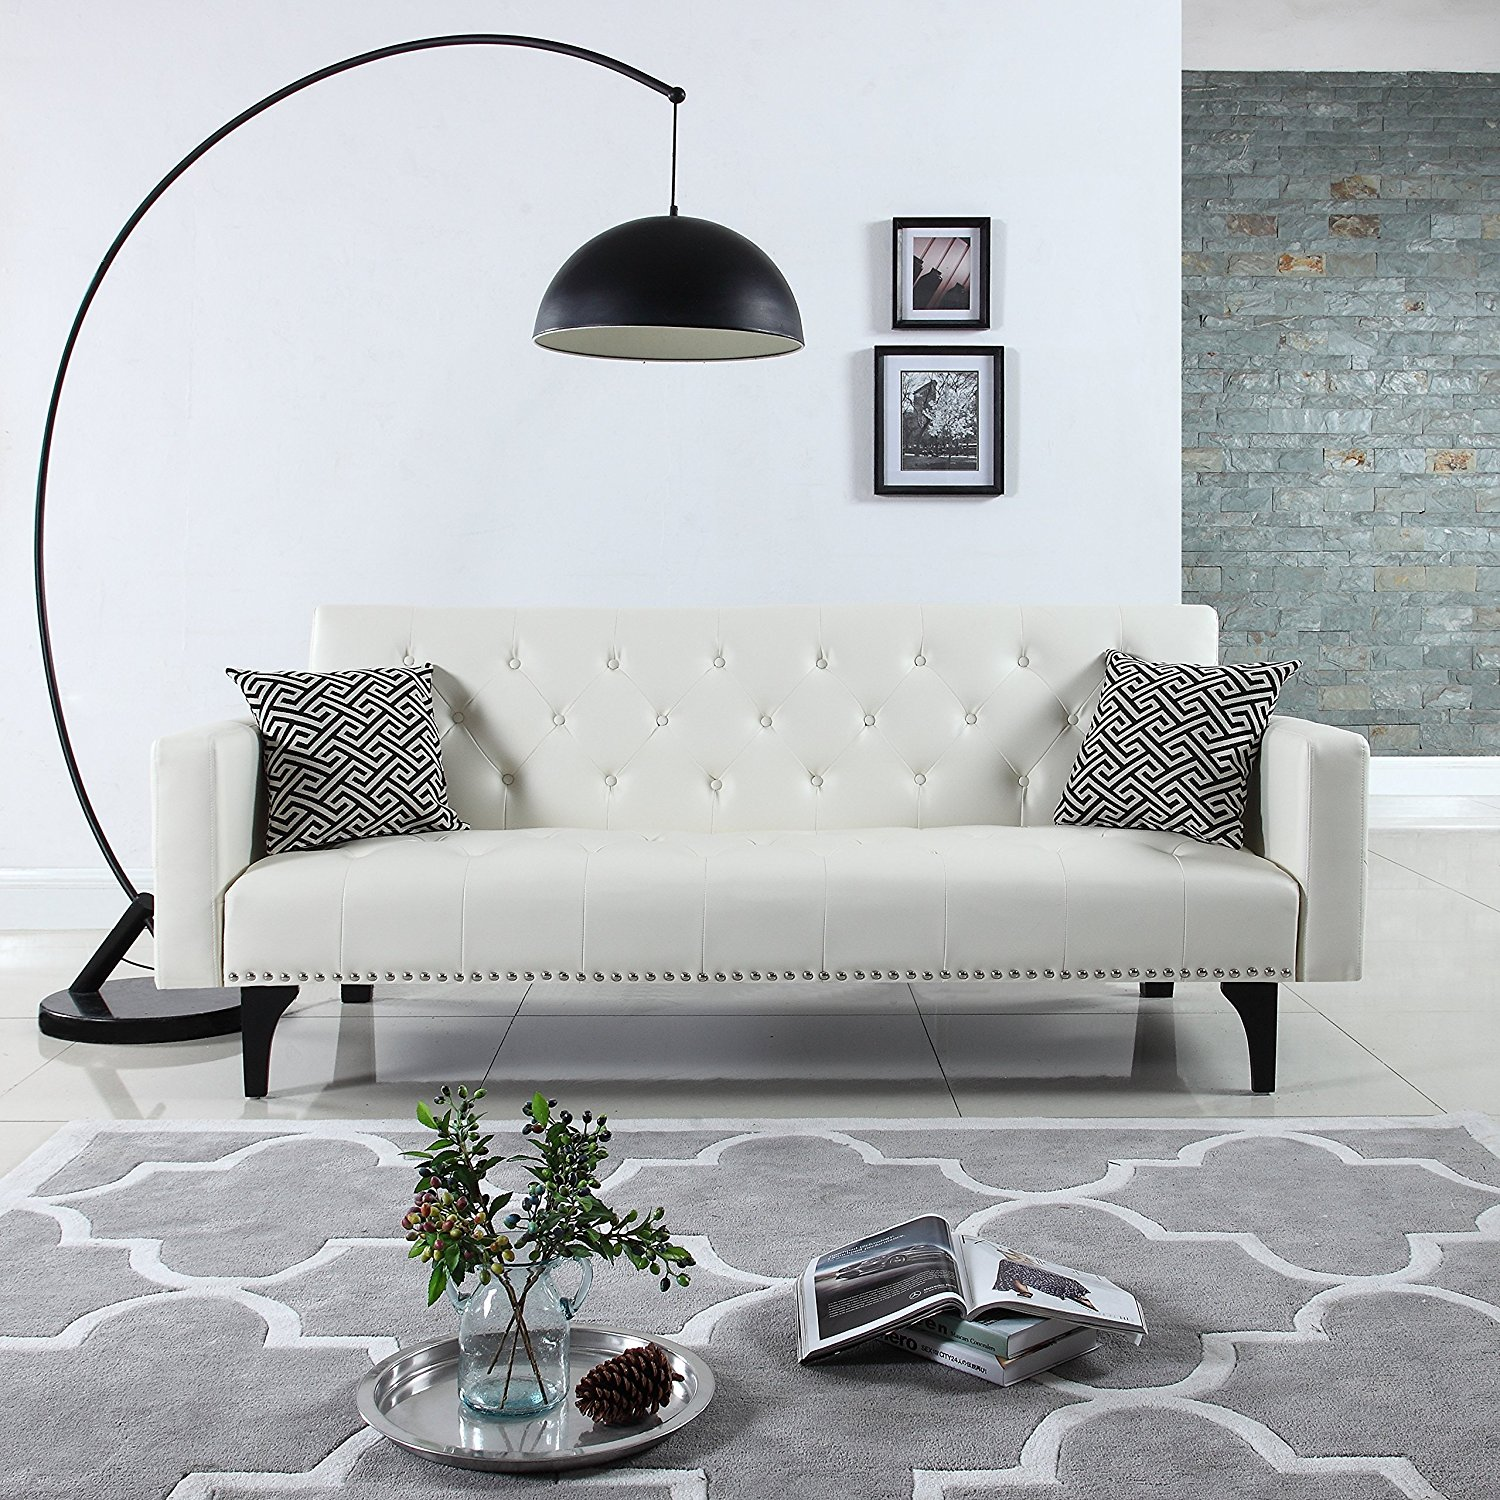 Modern Tufted Bonded Leather Sleeper Futon Sofa with Nailhead, White